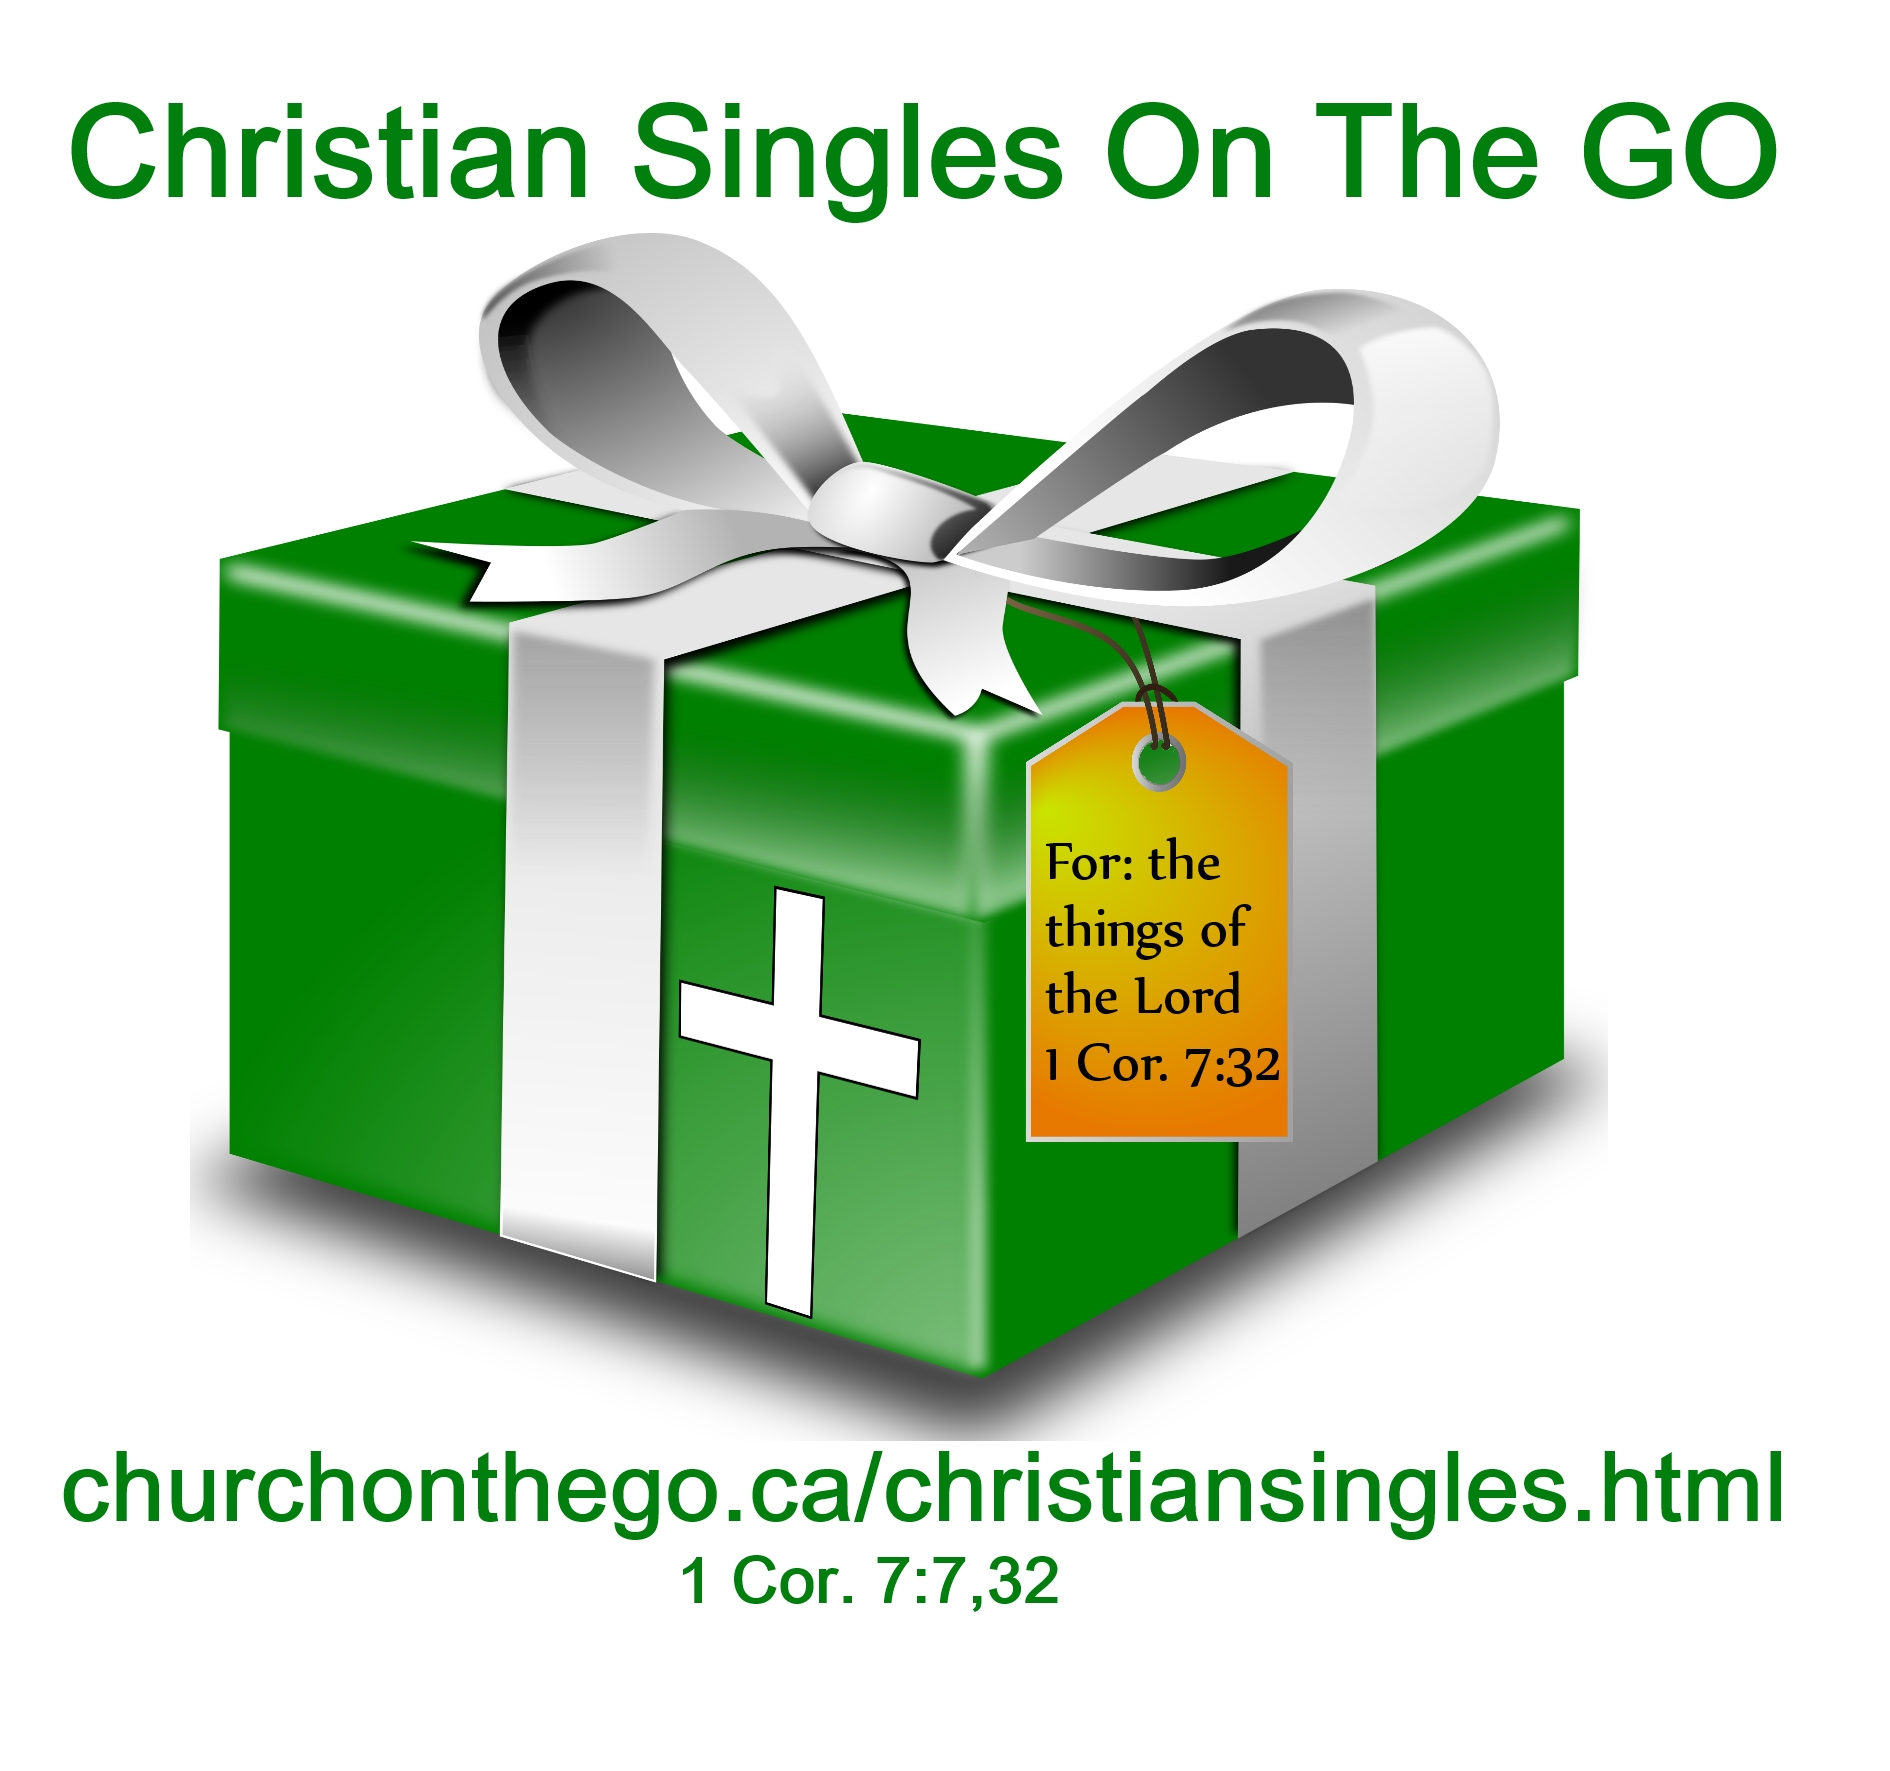 new hartford christian singles New hartford born again christian meetup https:  christian singles, connecticut member connecticut bicycling meetup member ct singles events.